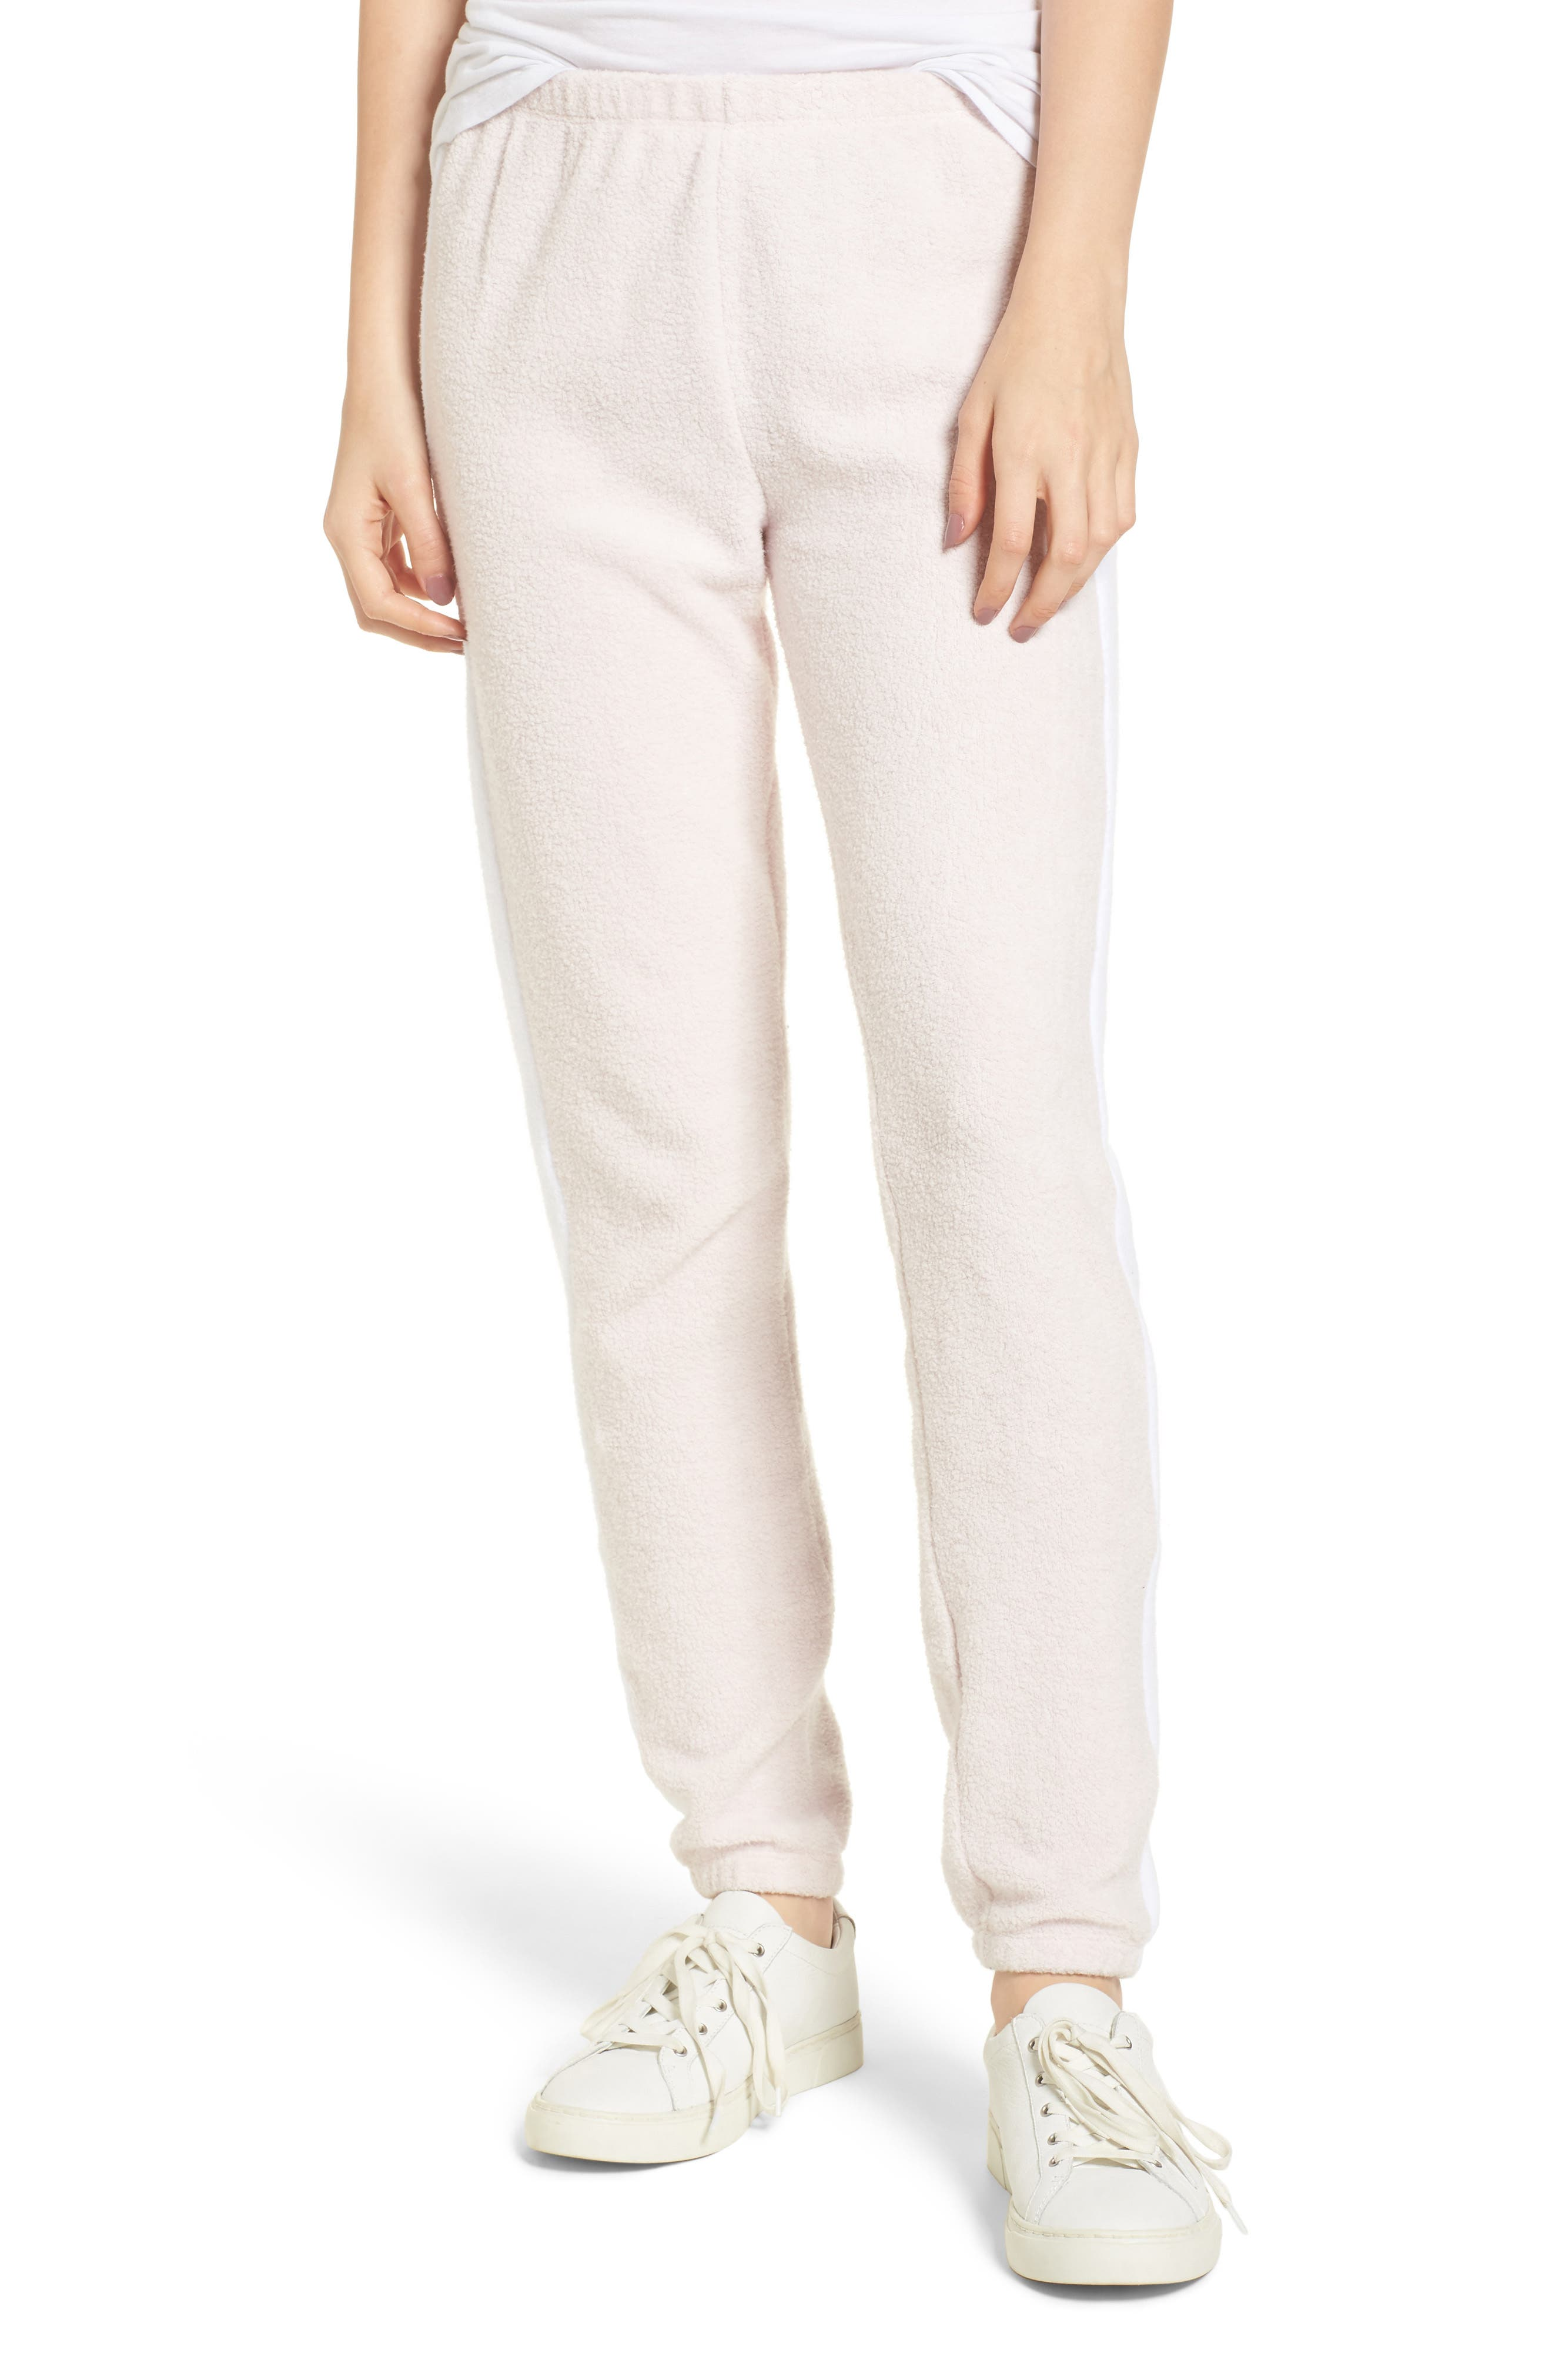 Track Star Knox Sweatpants,                             Main thumbnail 1, color,                             Iced Lavender